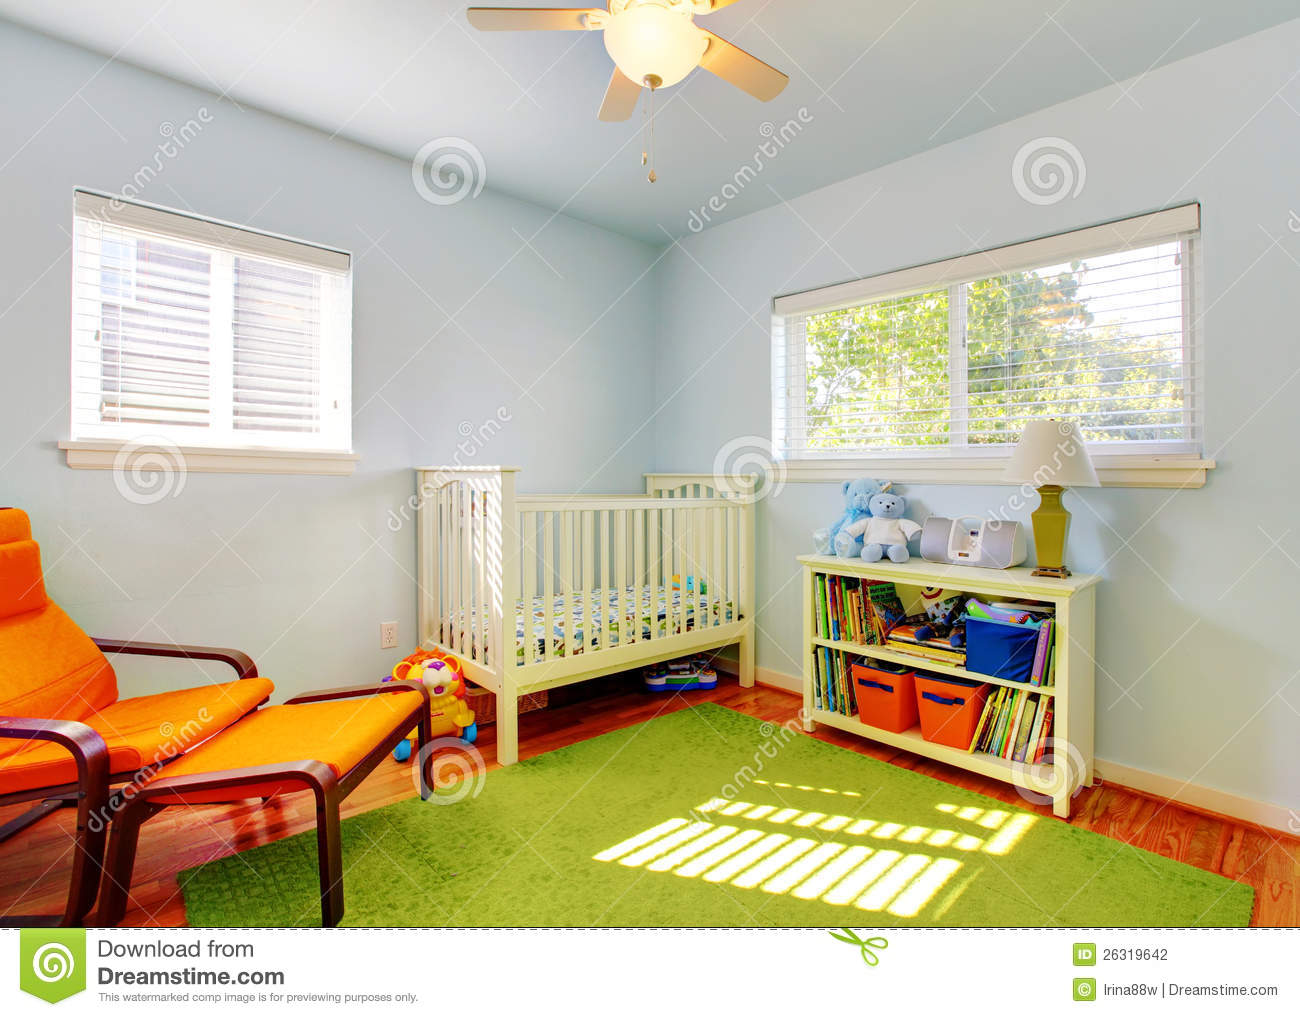 Baby Nursery Room Design With Green Rug Blue Walls And Orange Chair